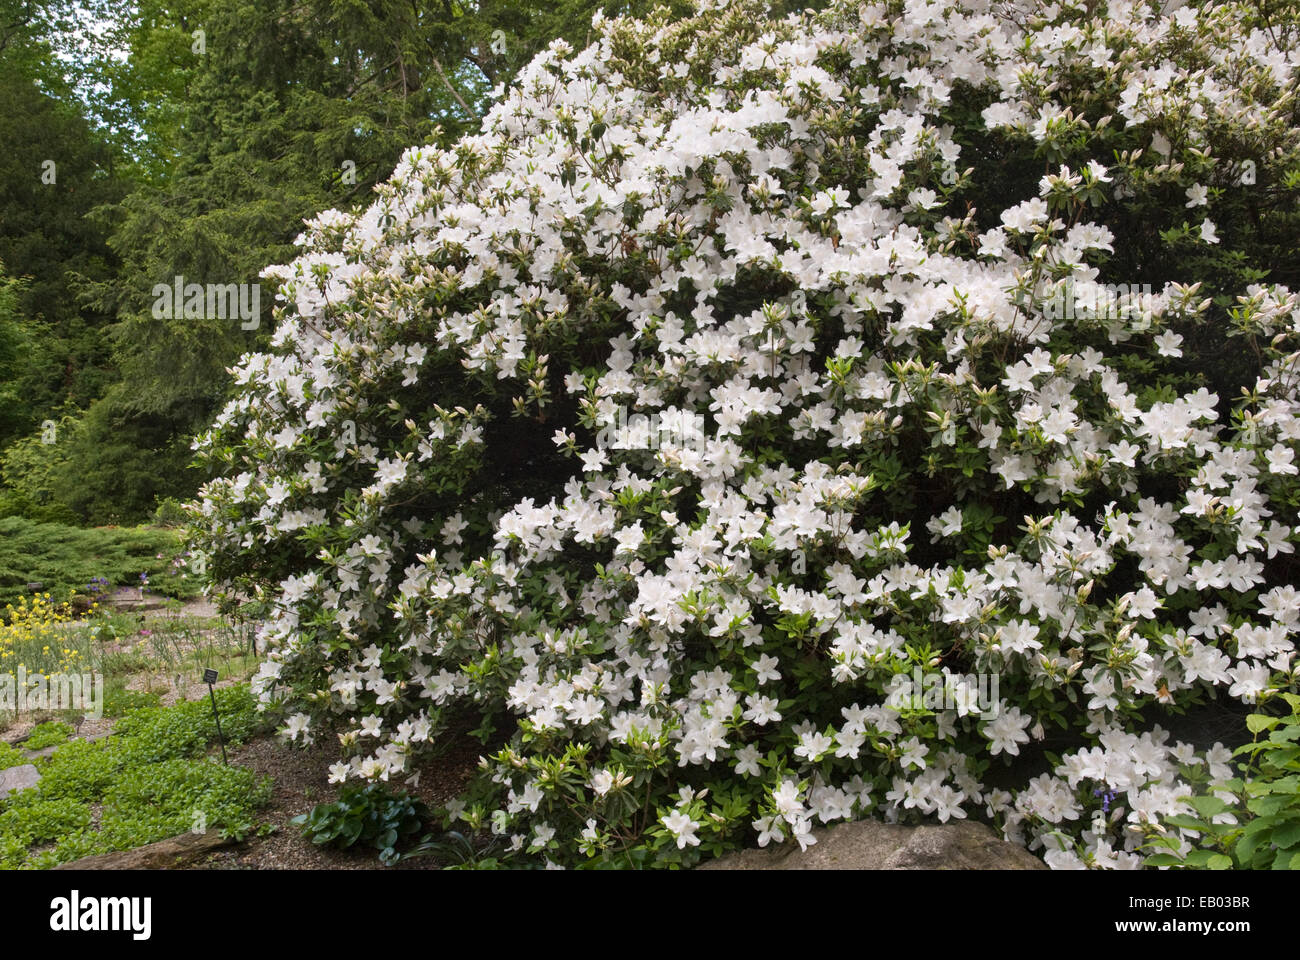 RHODODENDRON 'DELAWARE VALLEY WHITE' - Stock Image